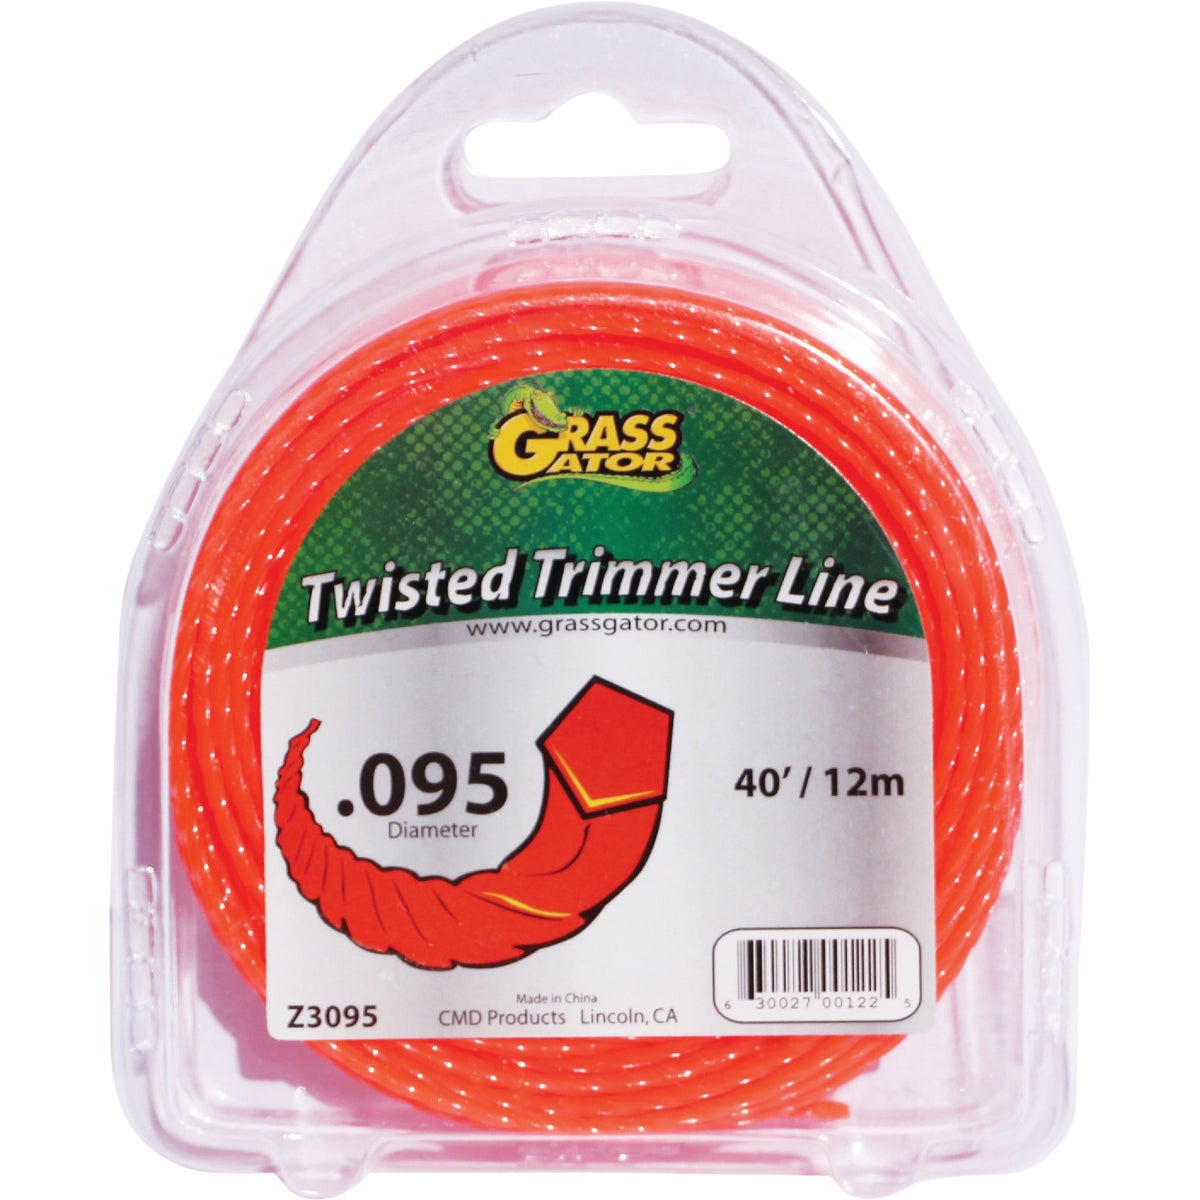 .095 TRIMMER LOOP - Z3095L by C M D Products